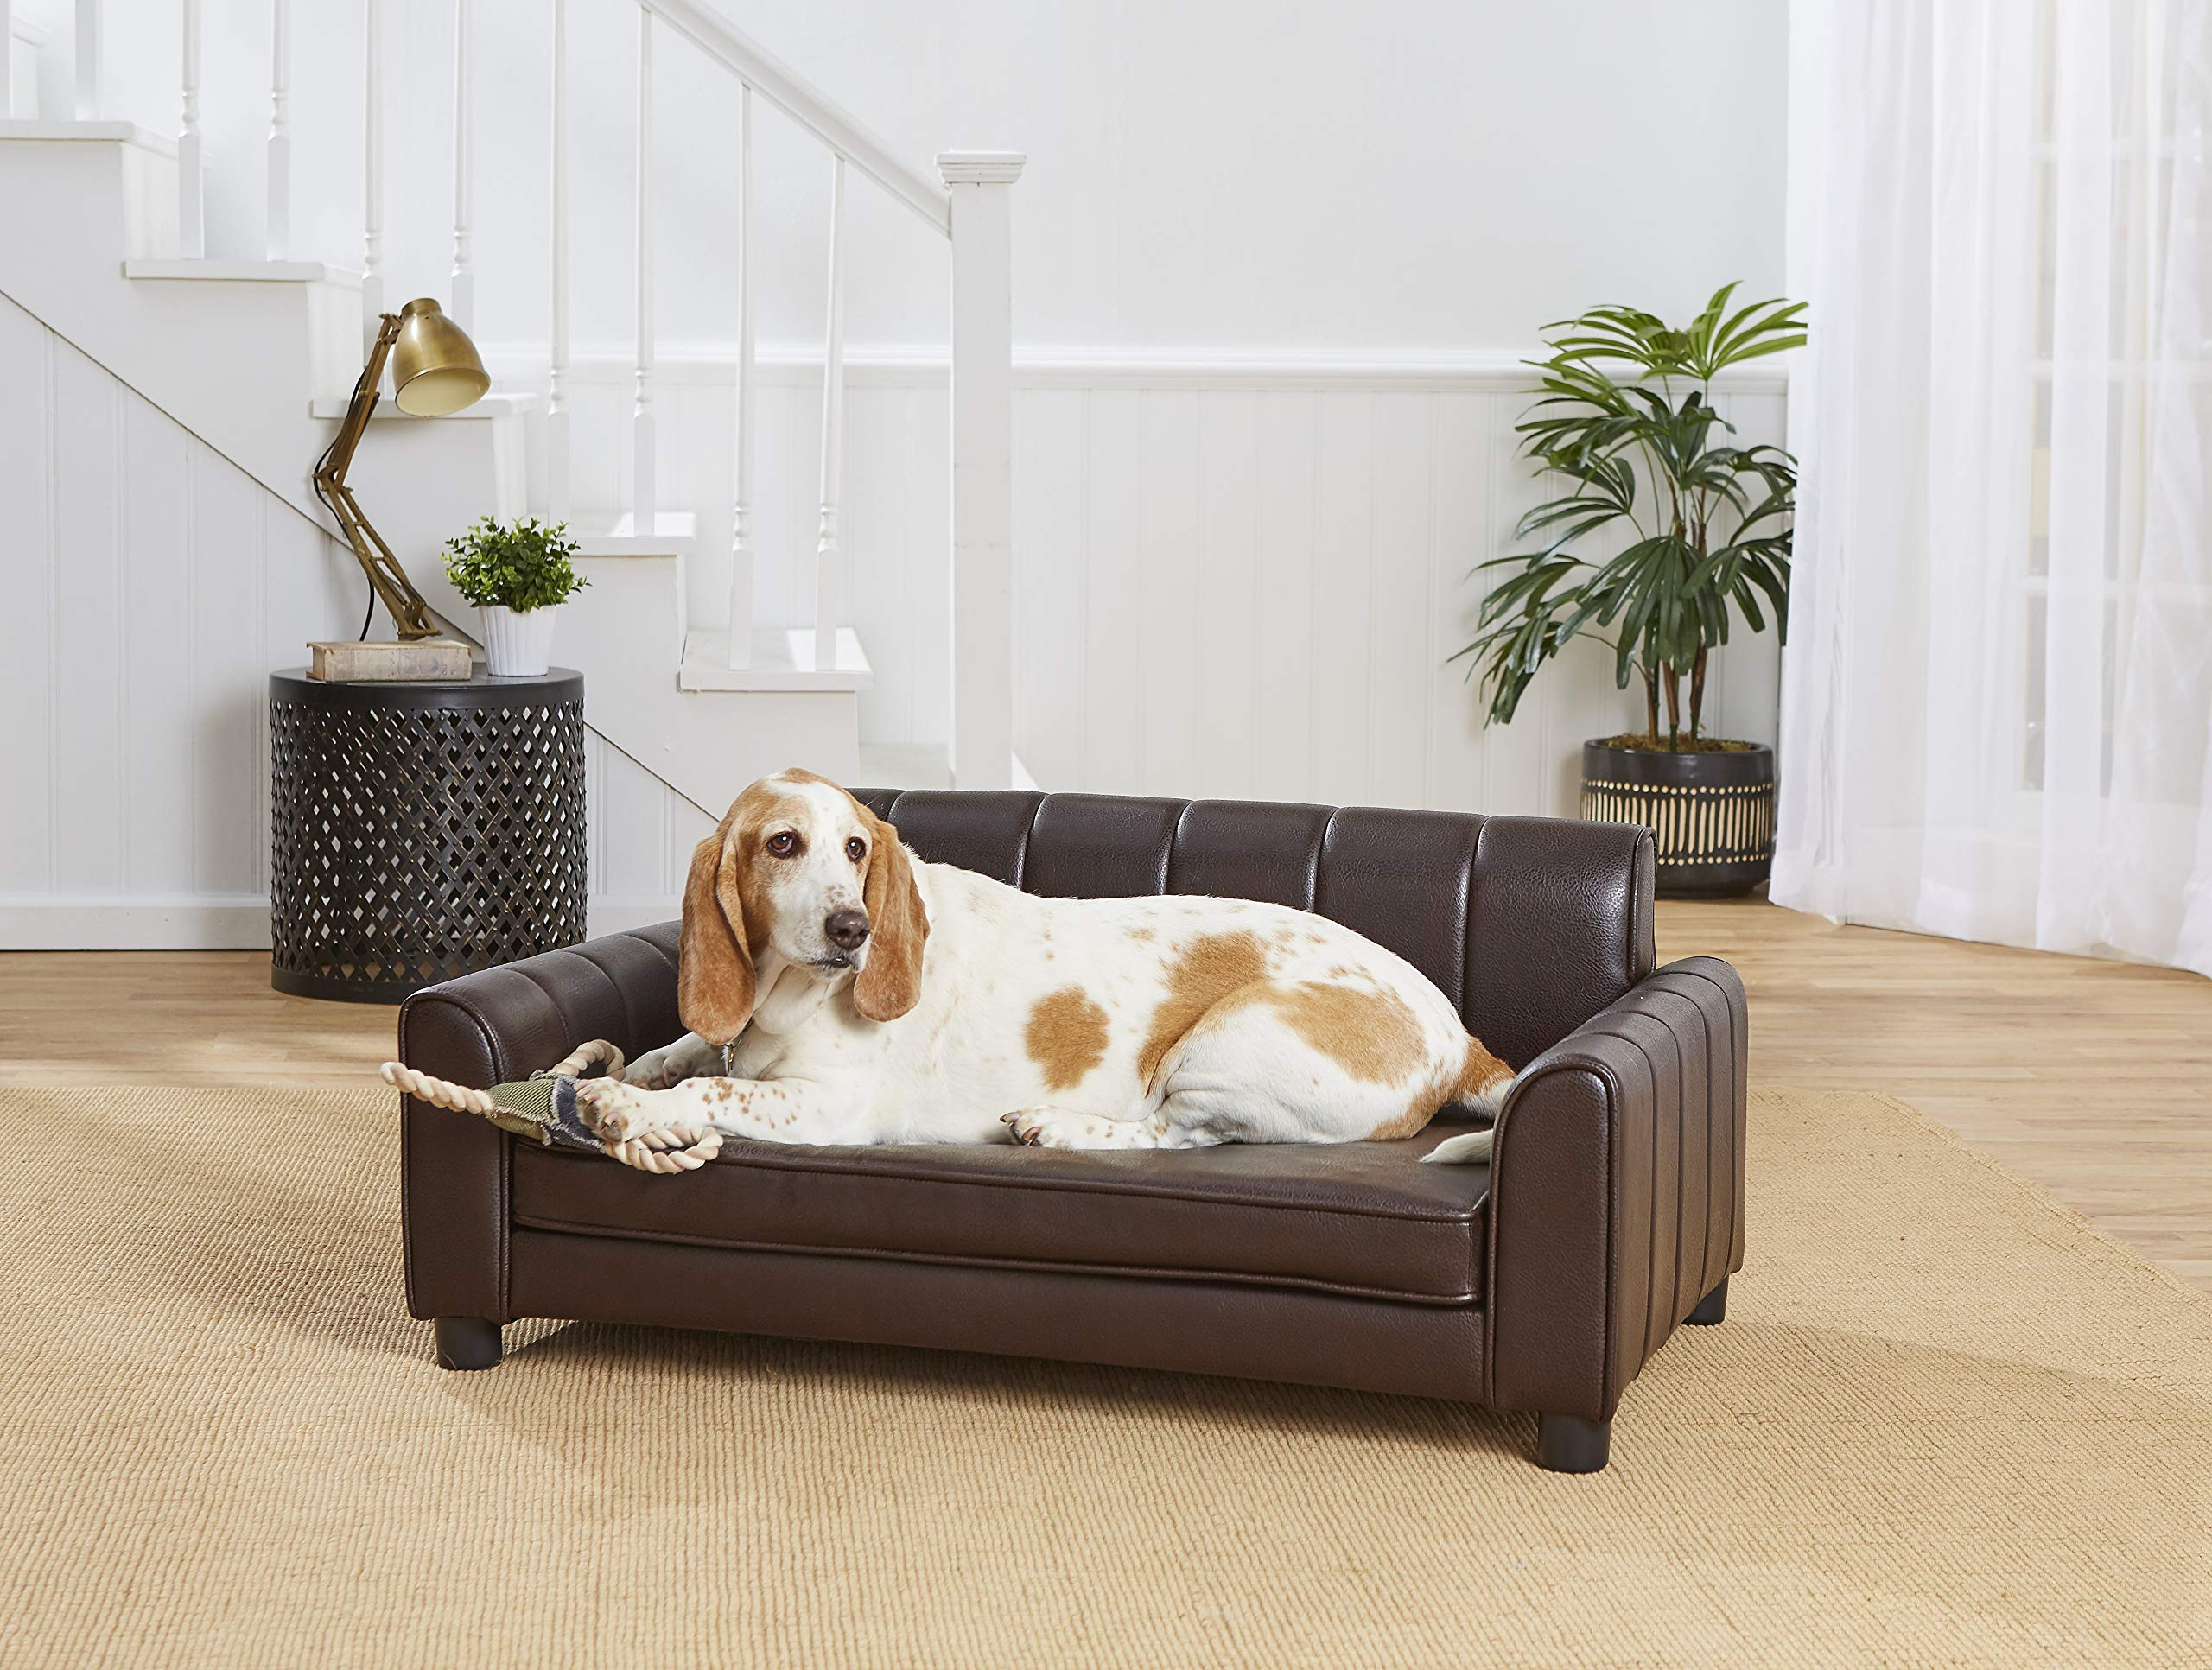 Enchanted Home Pet Ludlow Pet Sofa - Pebble Brown by Enchanted Home Pet